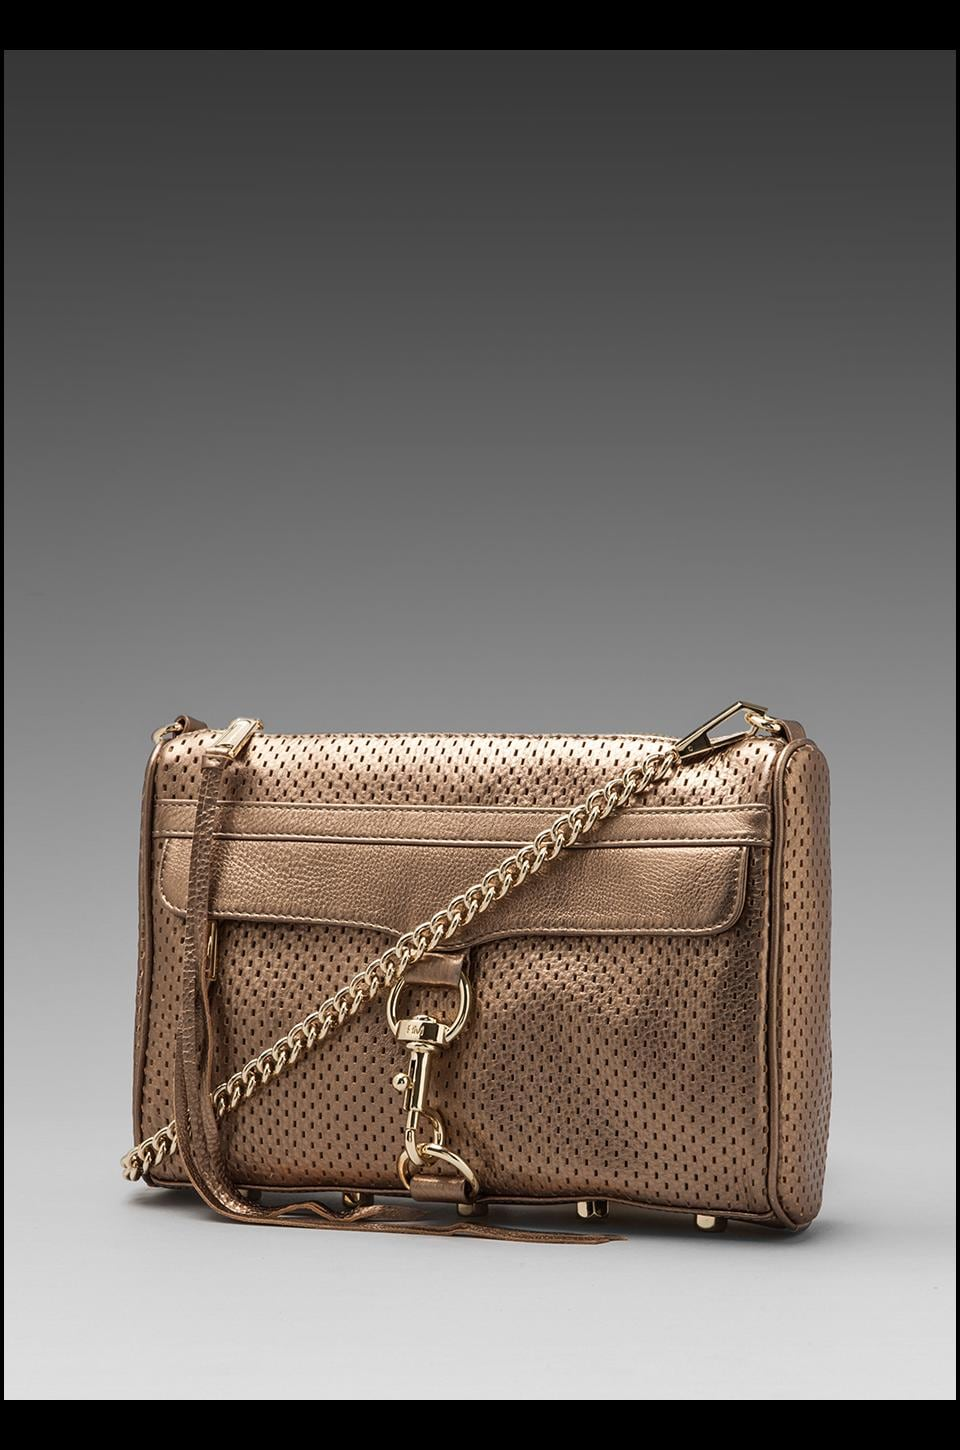 Rebecca Minkoff Mac Clutch in Bronze